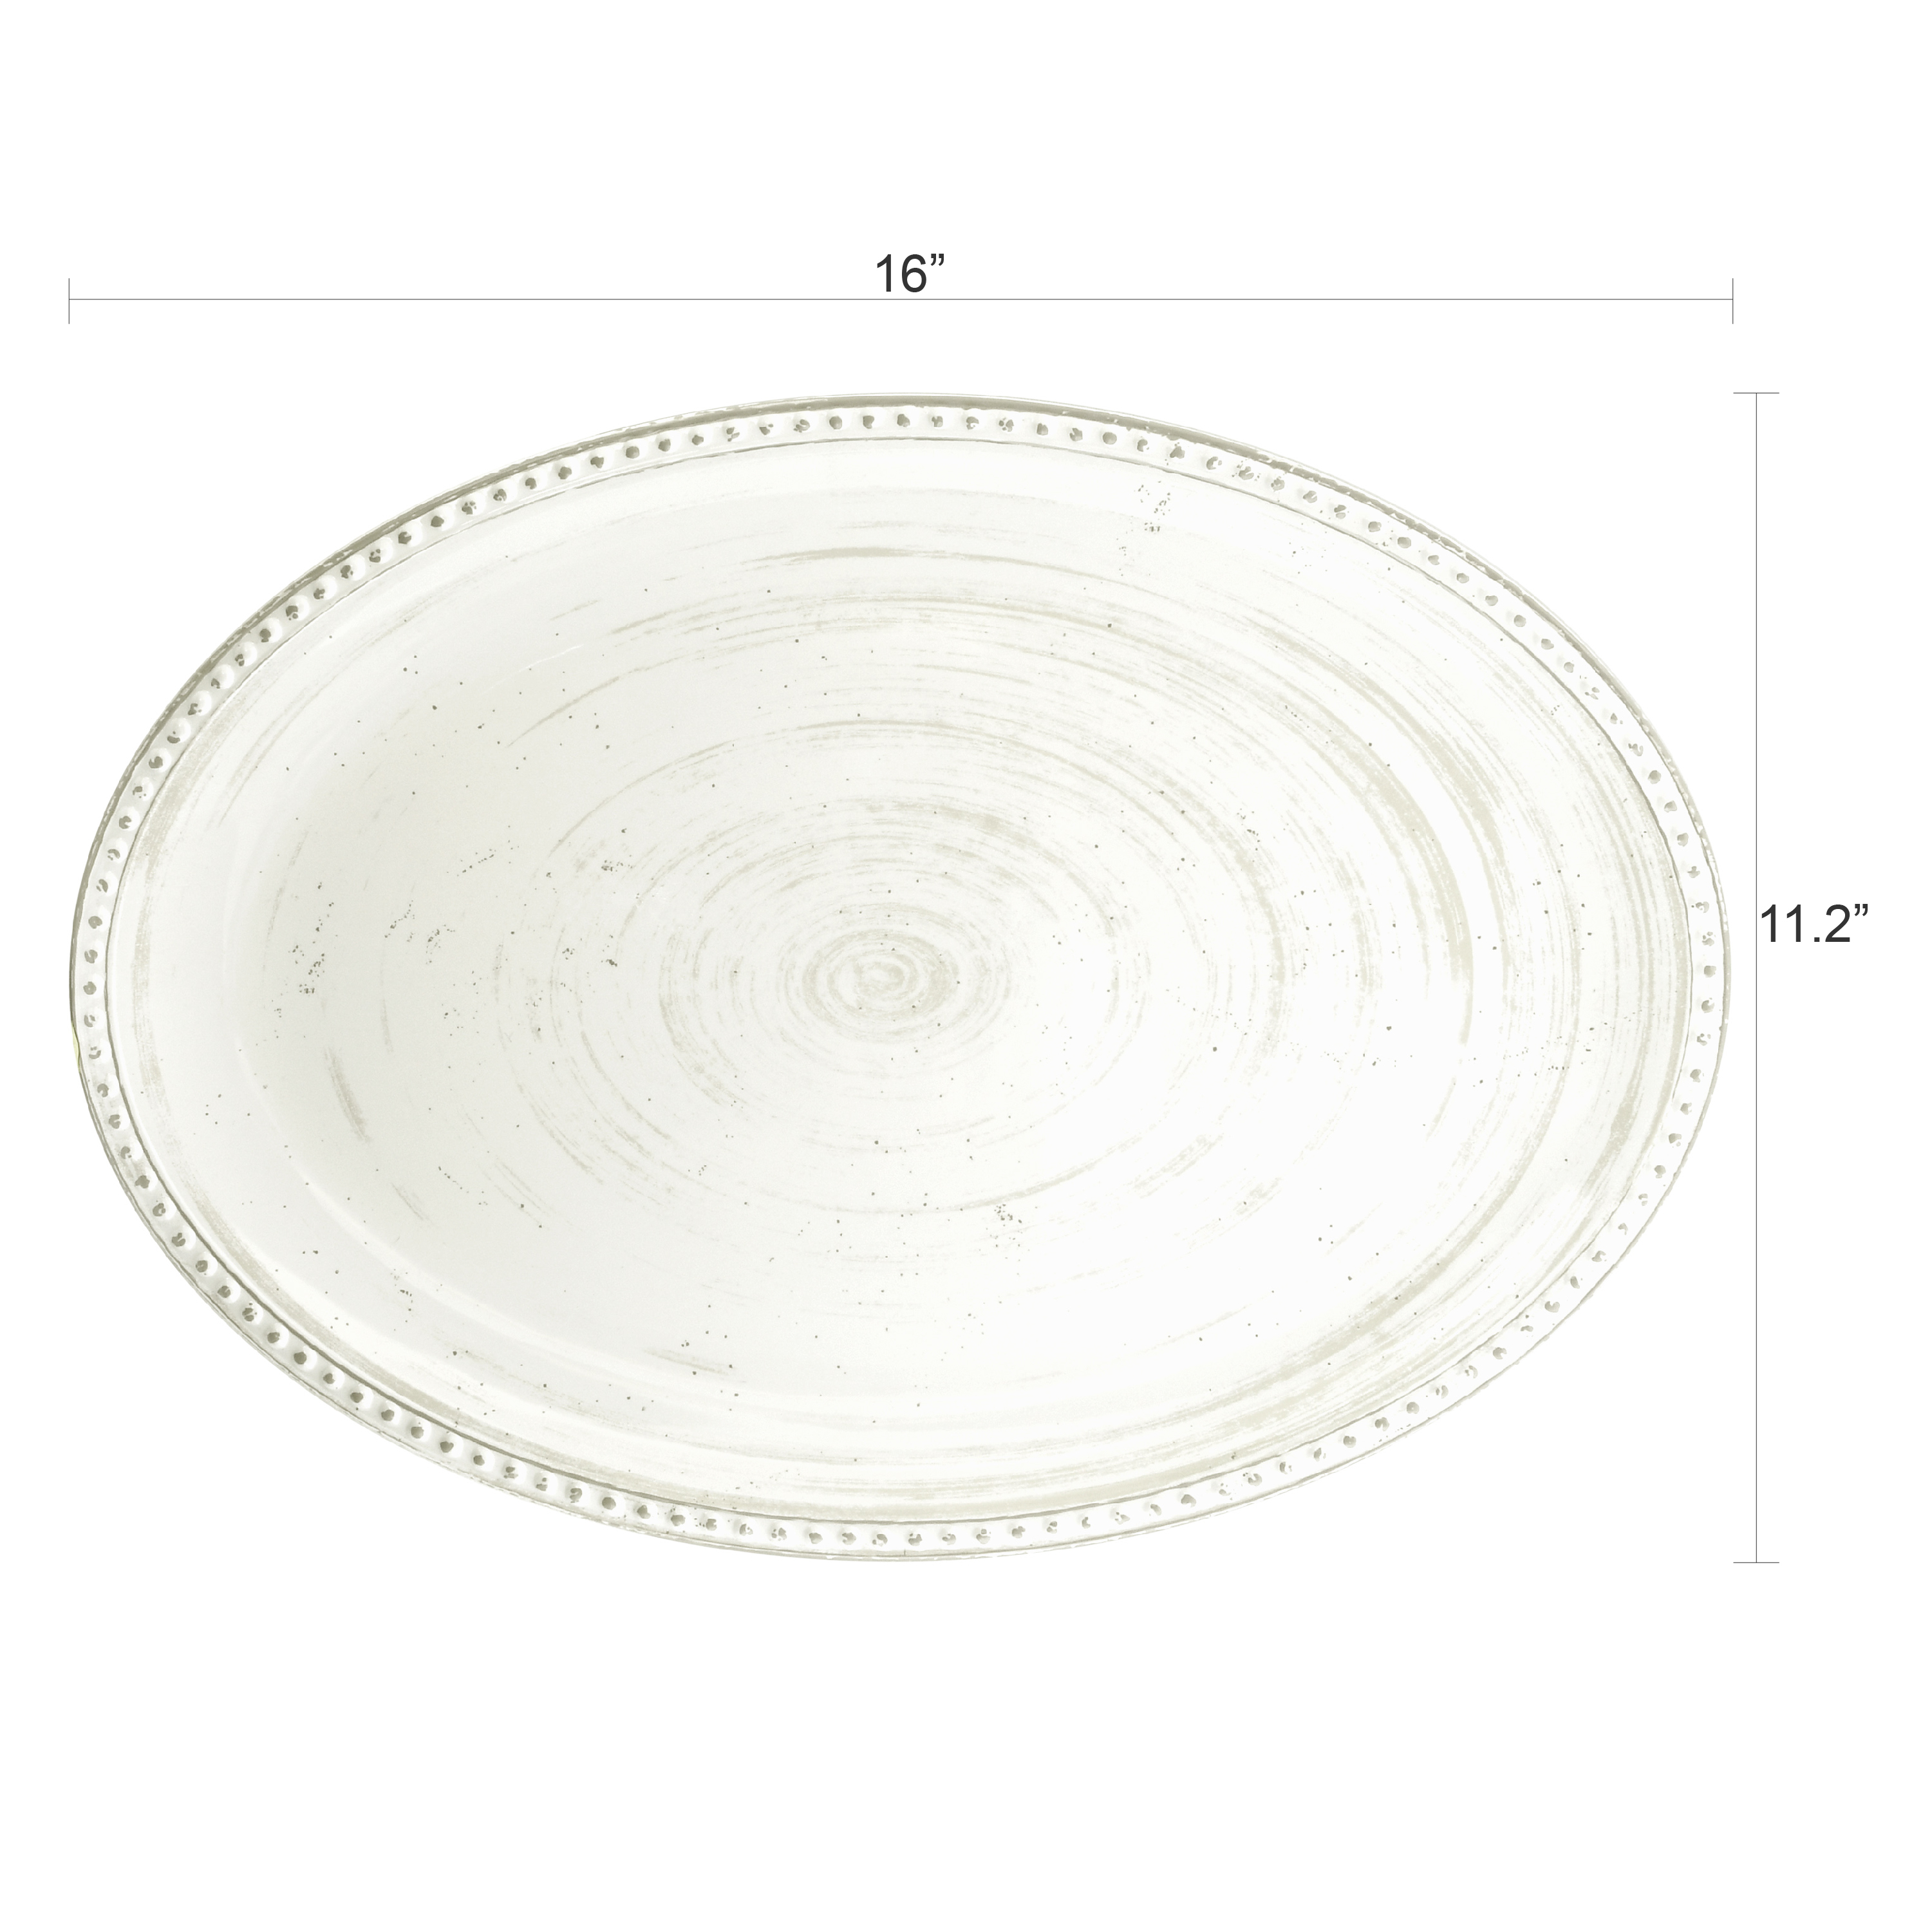 French Country Serving Tray, Oyster slideshow image 6